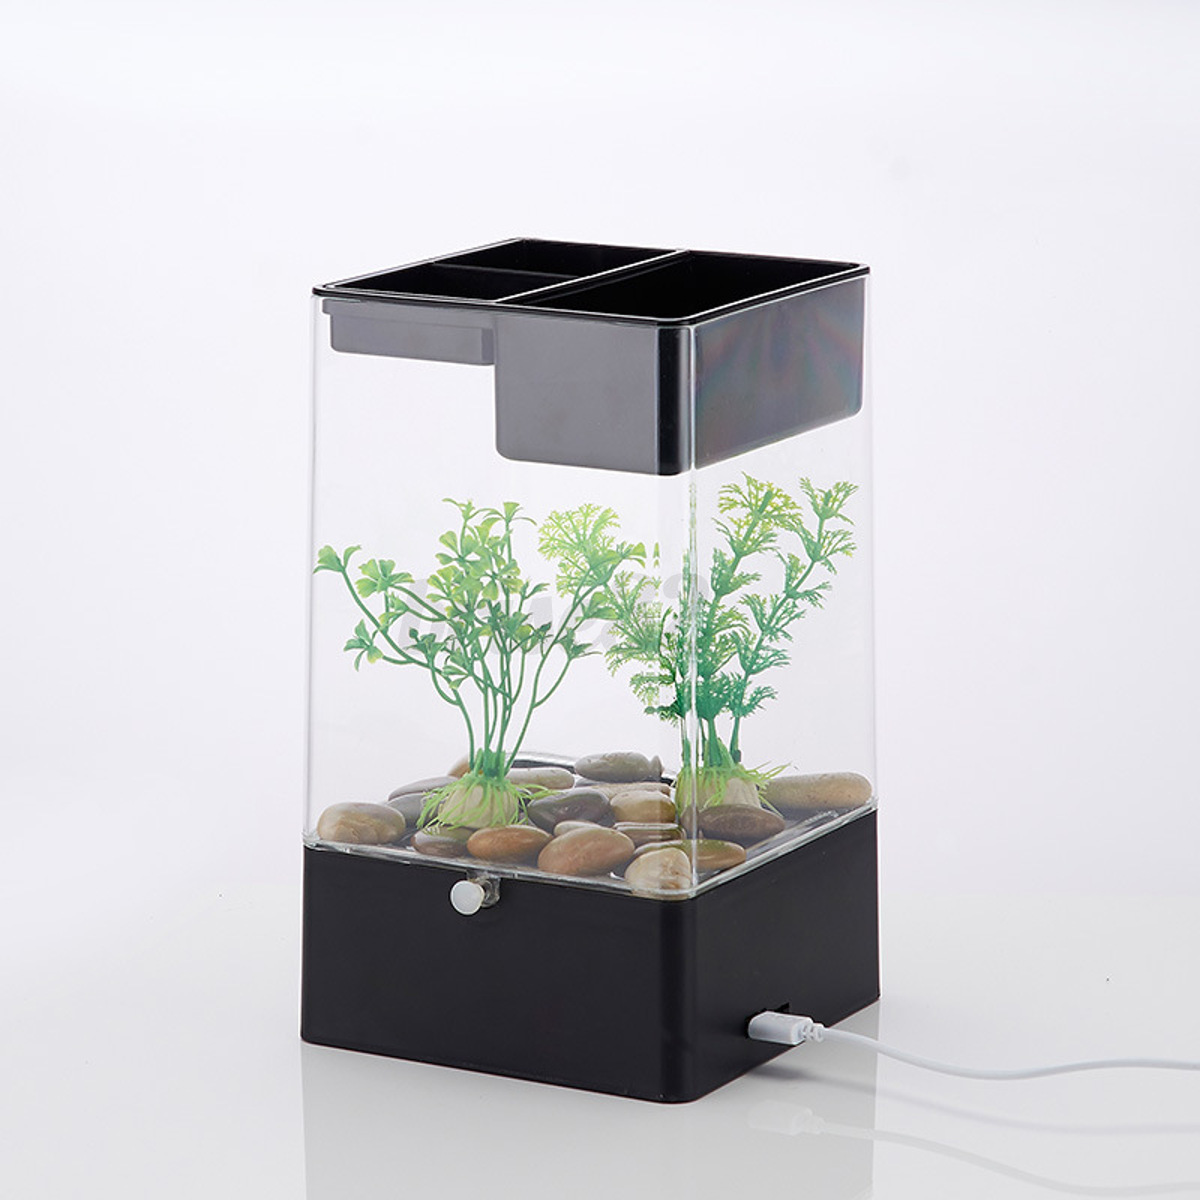 Led light square usb interface aquarium ecological office for Office fish tank